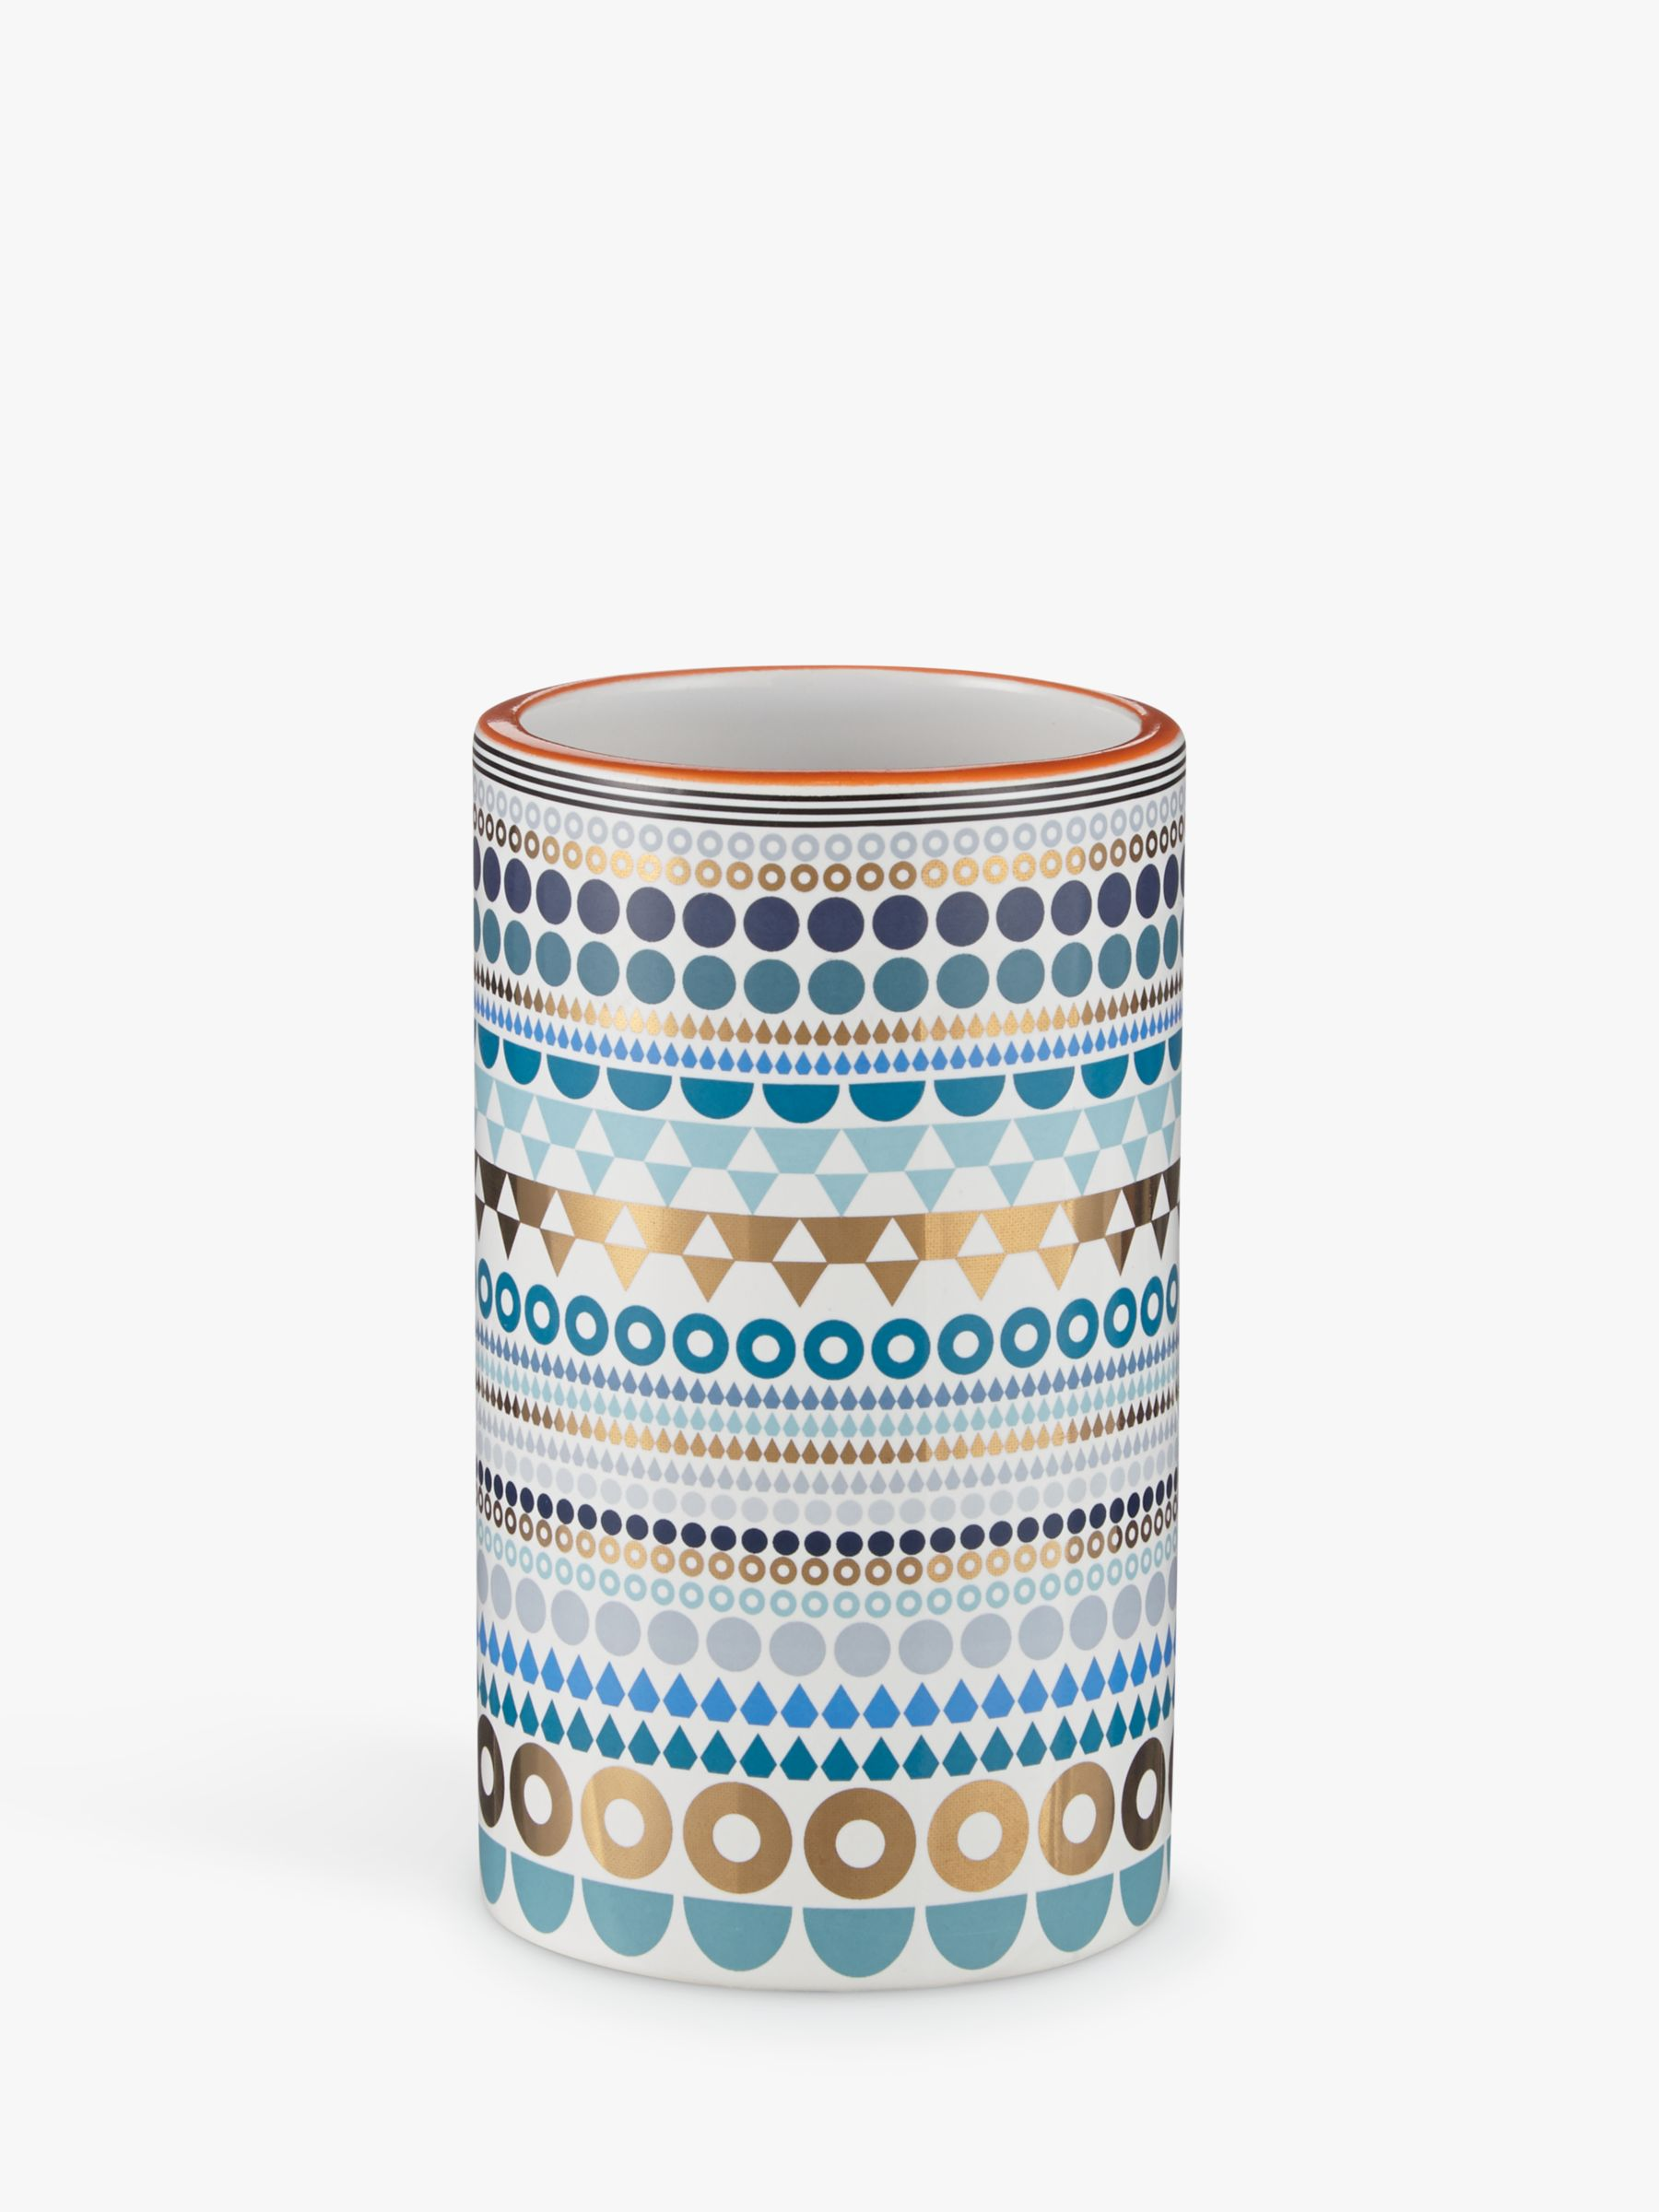 Margo Selby for John Lewis Margo Selby for John Lewis Bathroom Tumbler